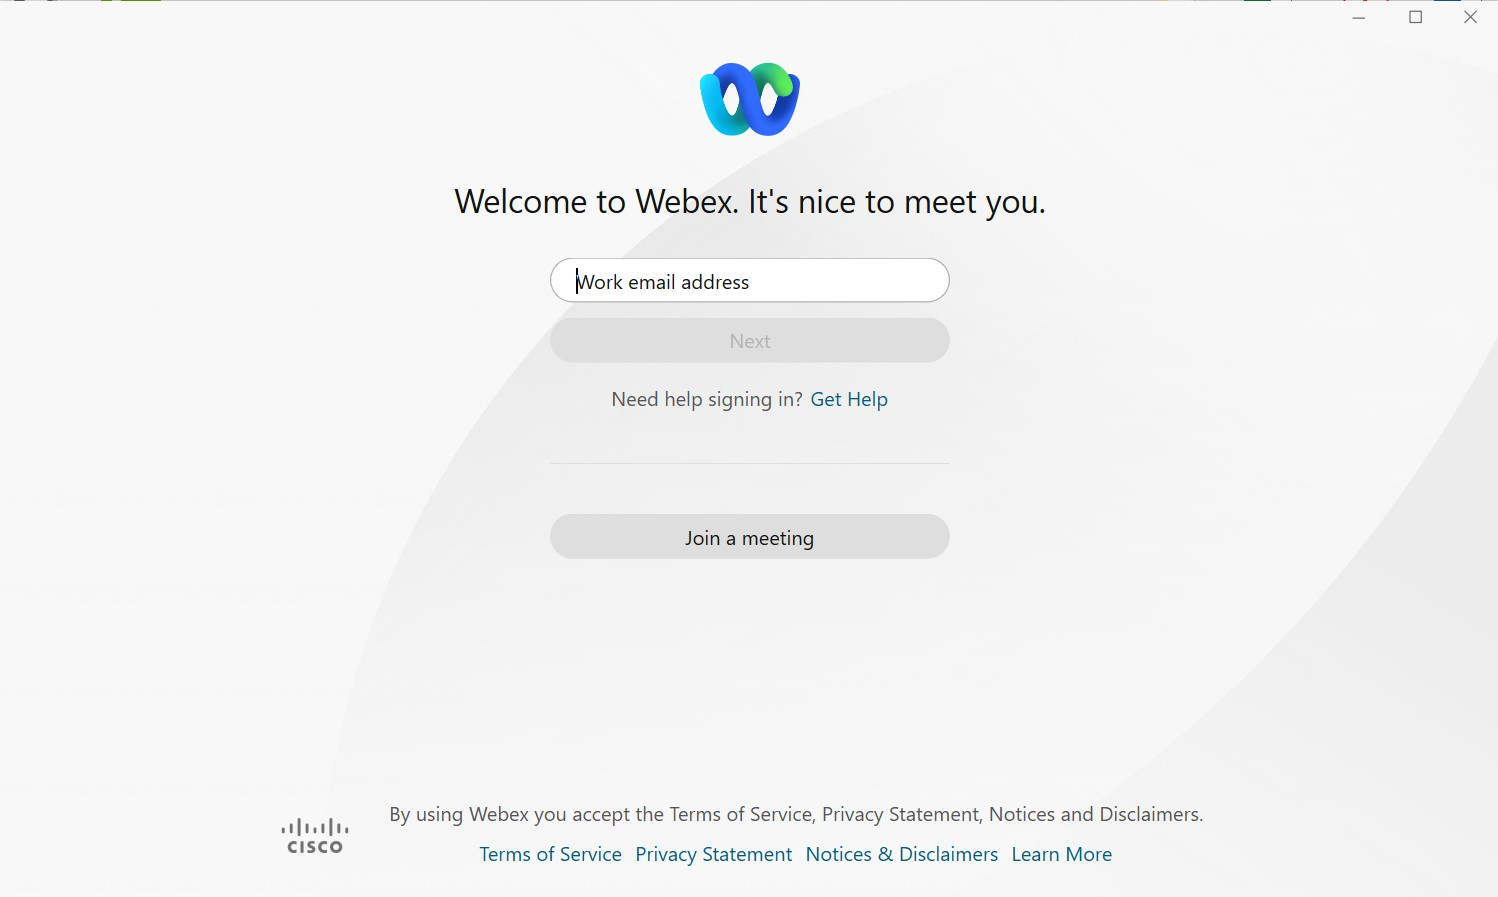 Webex desktop client sign-in screen requesting Work email address. Image opens in full resolution in a new tab.